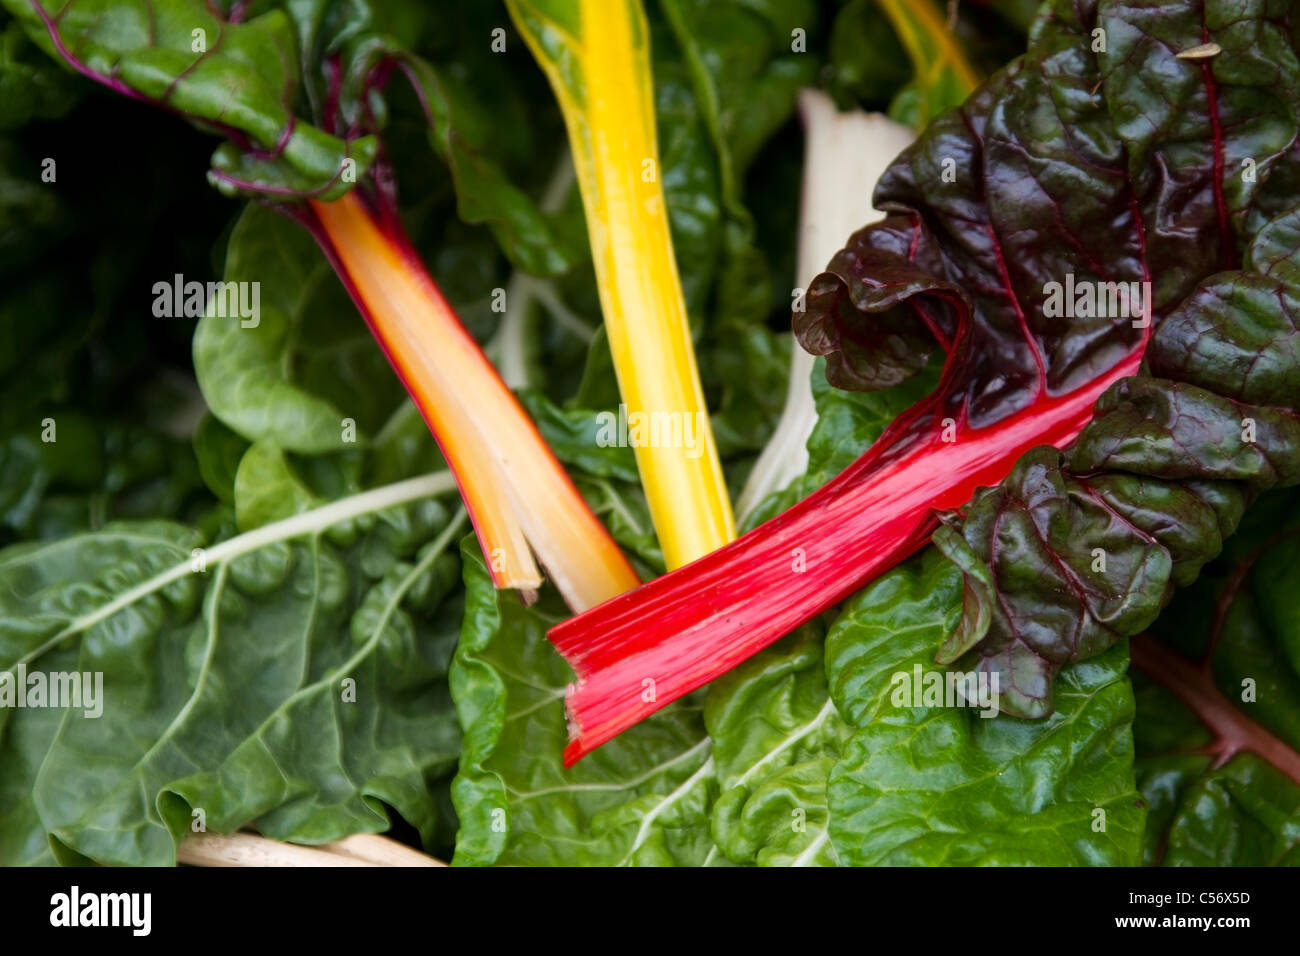 Rainbow chard for sale at Winchester Farmers Market, Hampshire Stock Photo